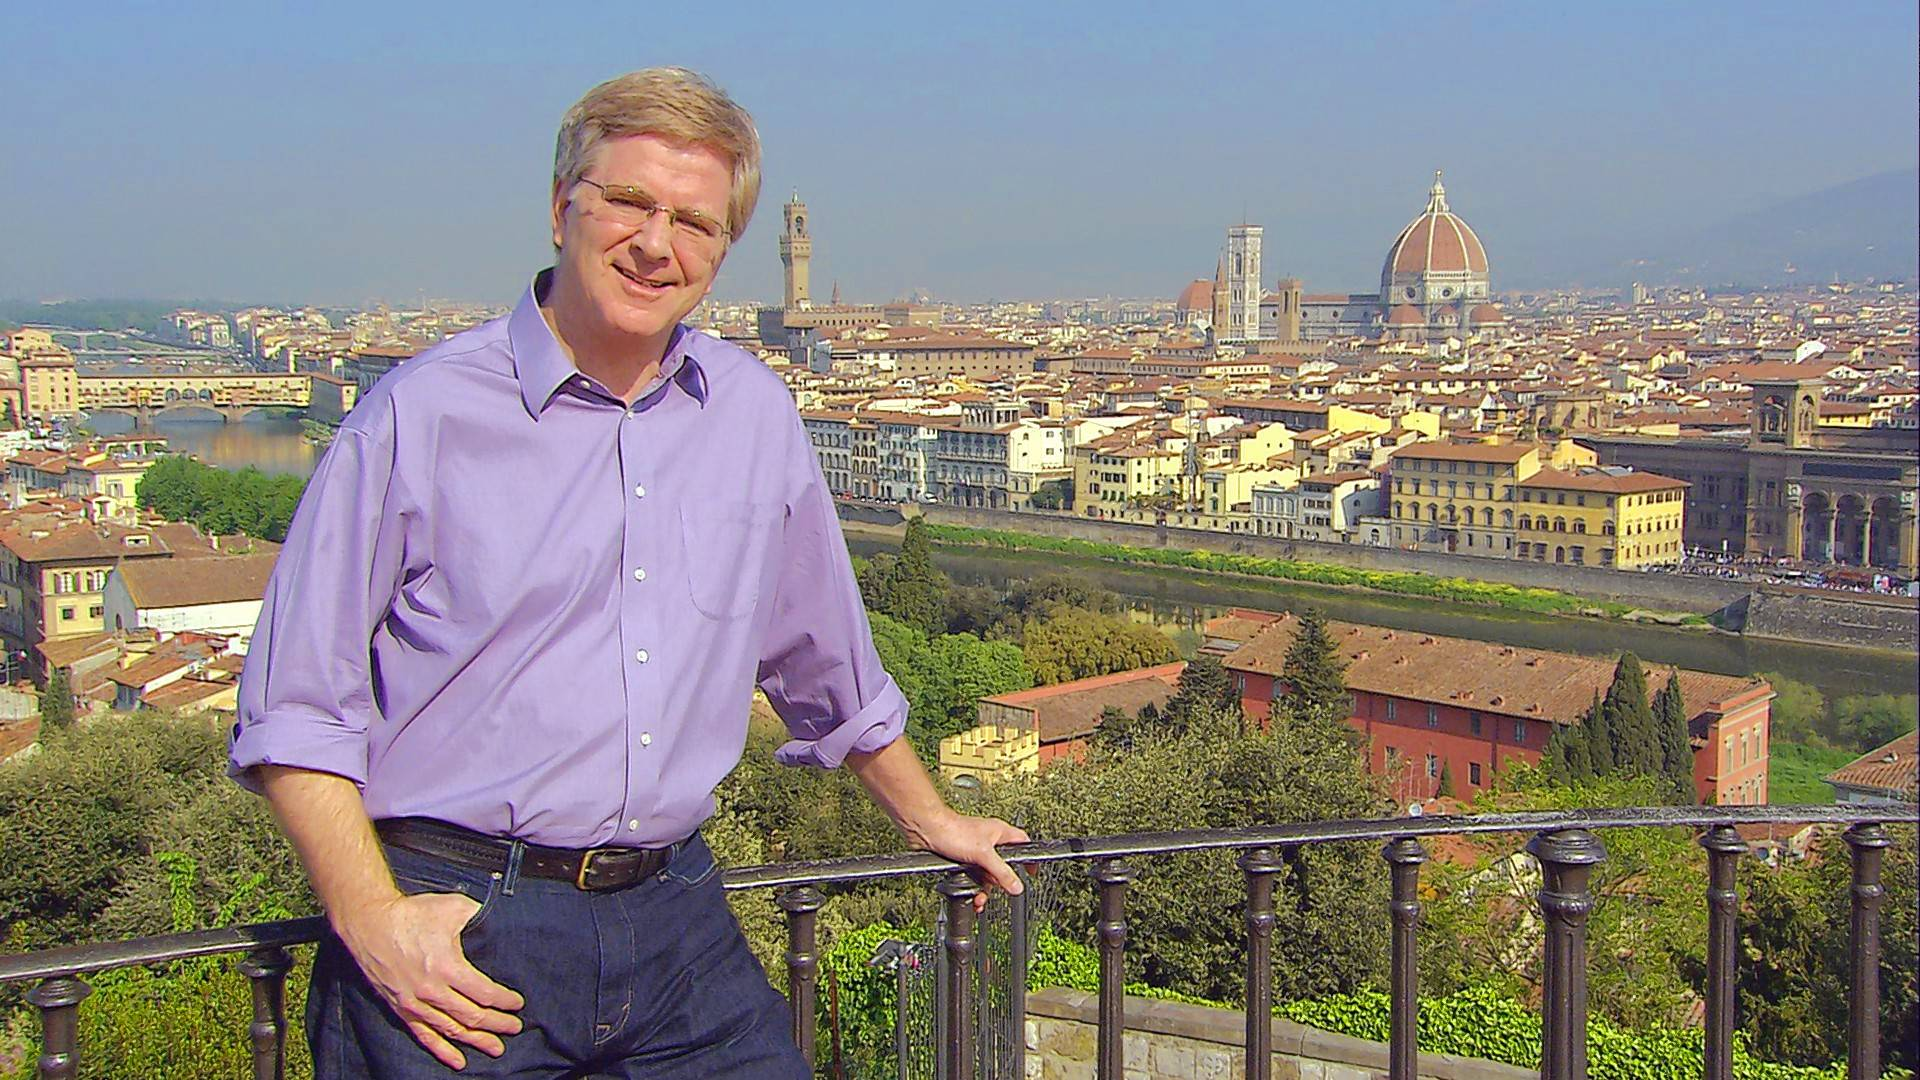 Travel writer and TV host Rick Steves is scheduled to appear at the Travel & Adventure Show at Rosemont's Donald E. Stephens Convention Center on Saturday and Sunday, Jan. 12 and 13.